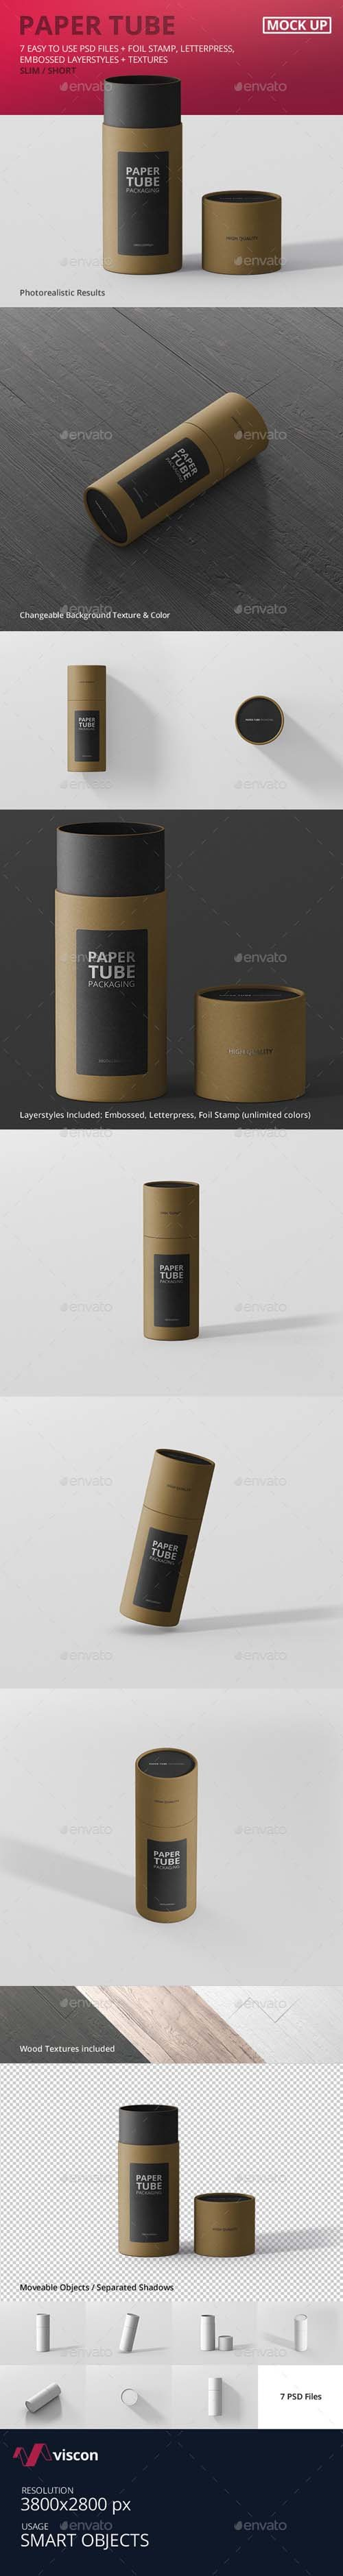 Paper Tube Packaging Mockup - Slim Short 19315730